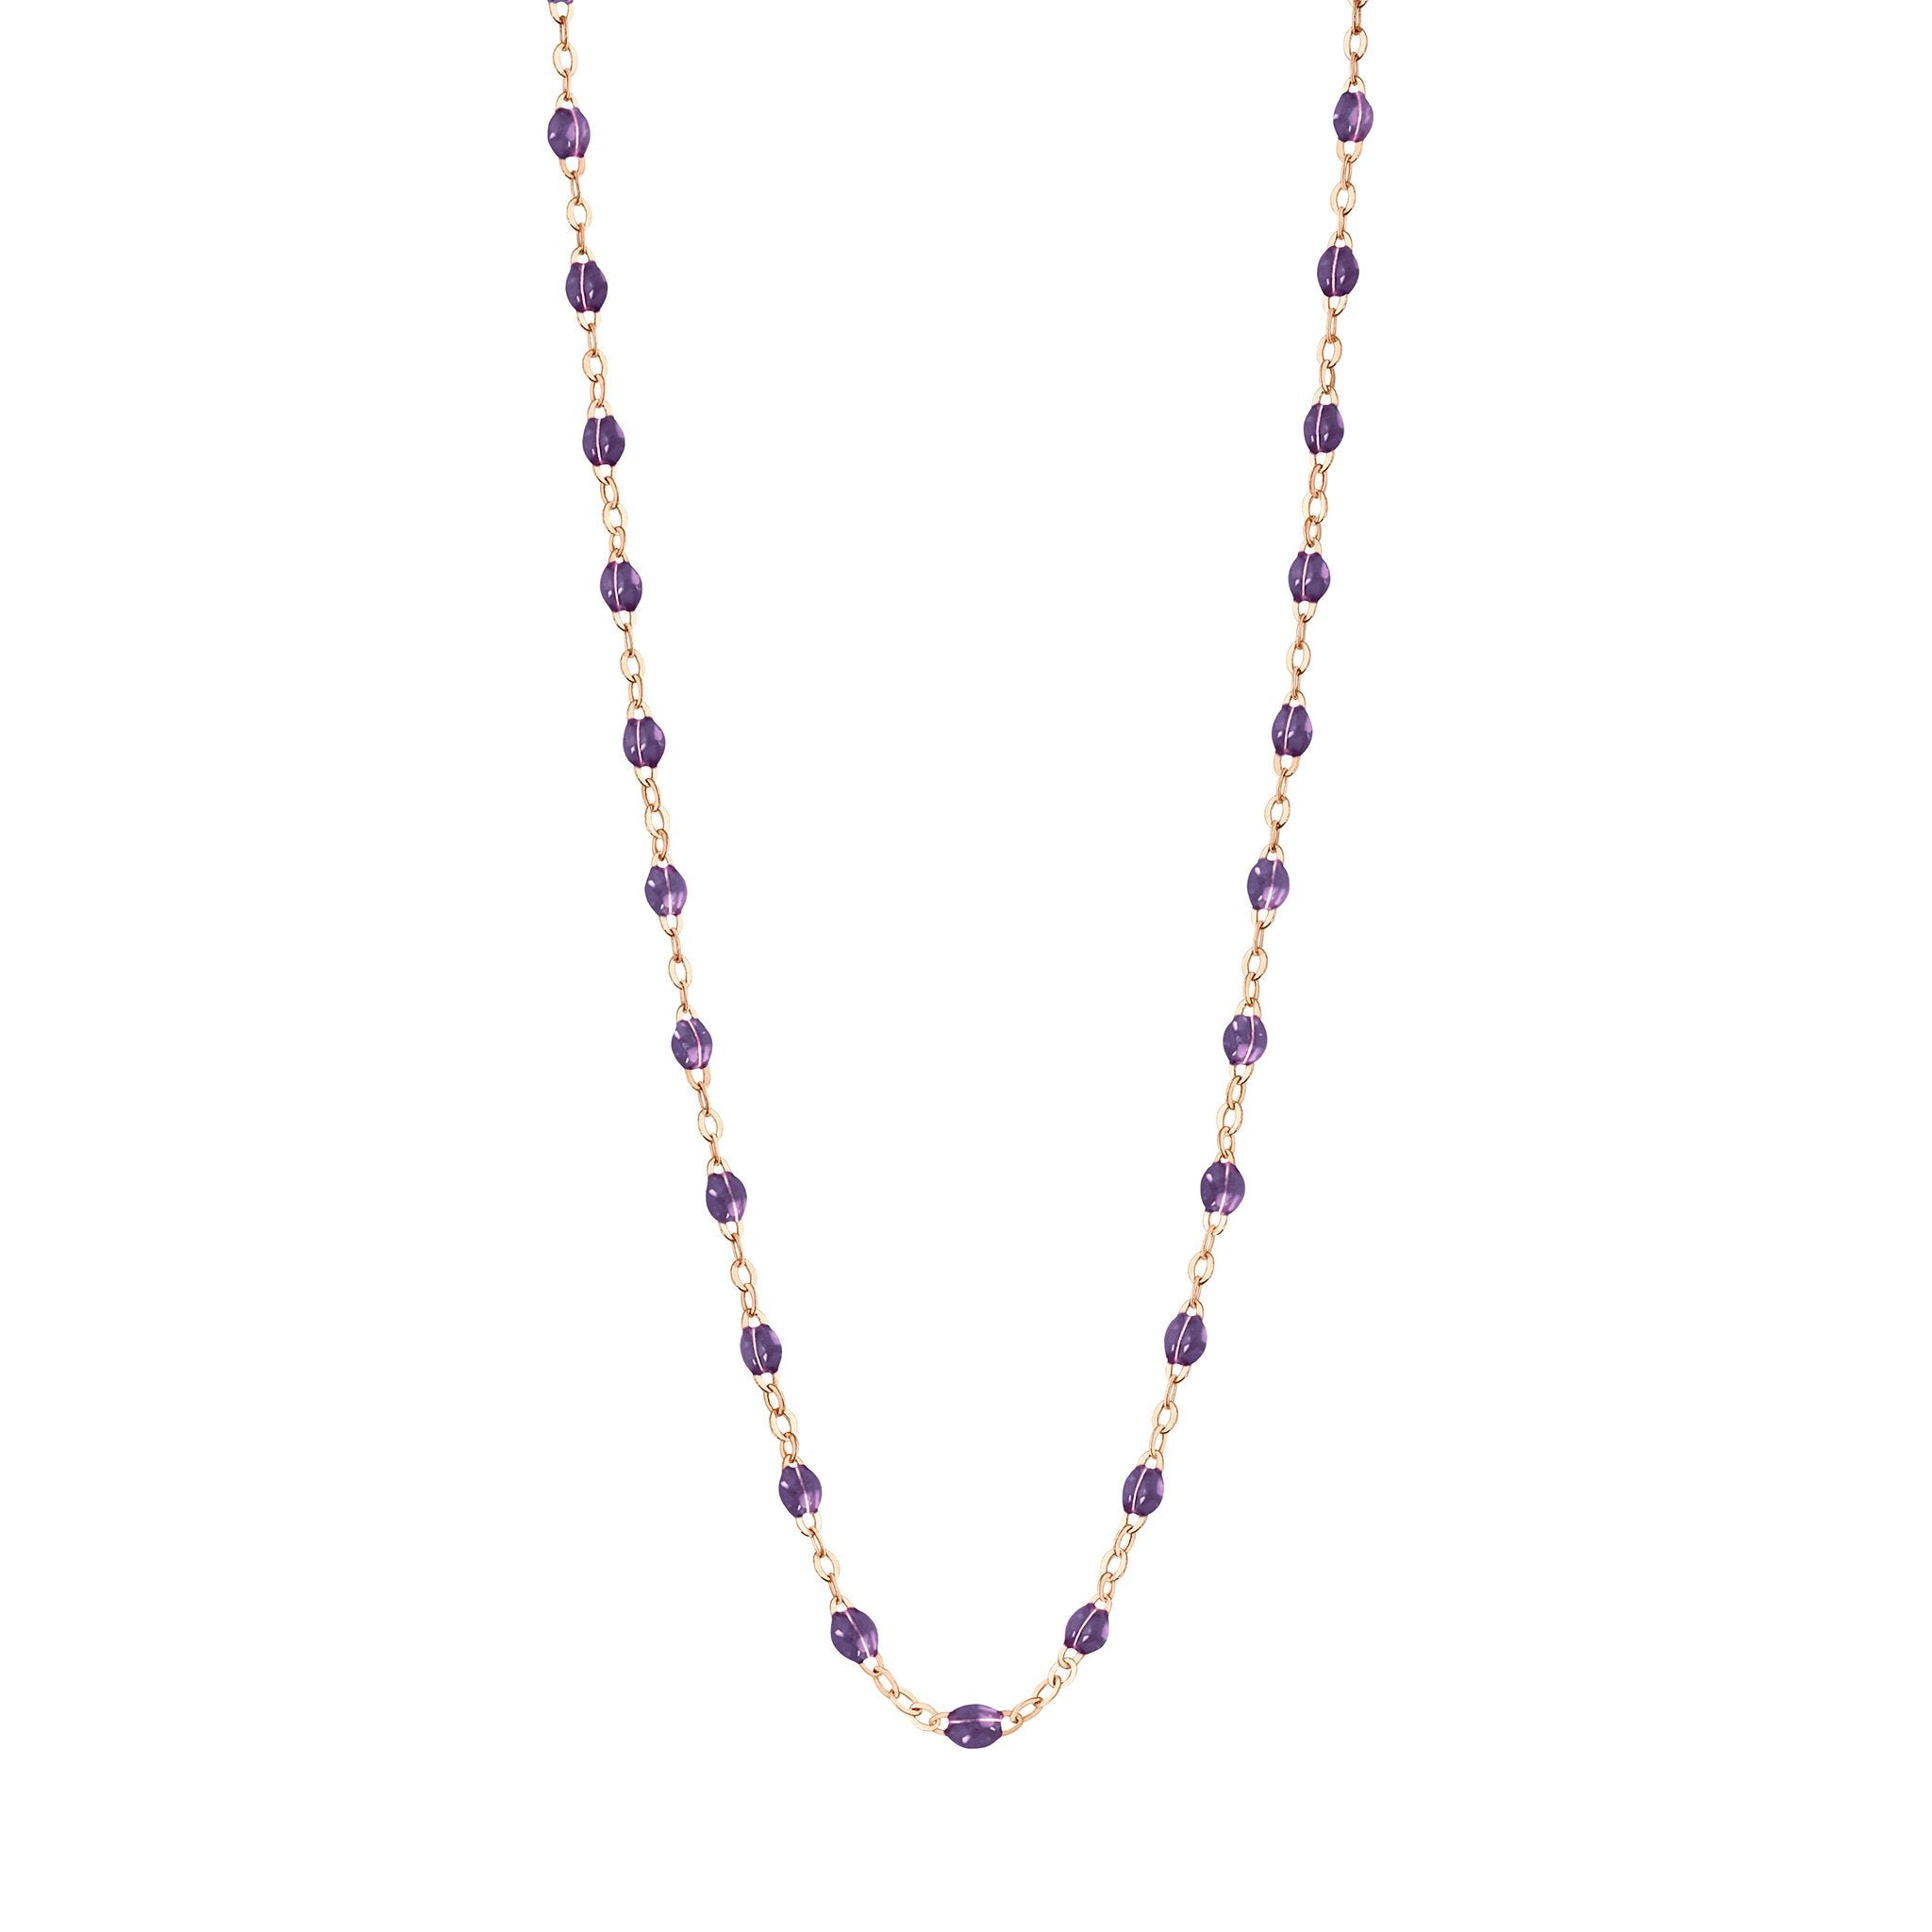 Gigi Clozeau - Classic Gigi Violet necklace, Rose Gold, 17.7